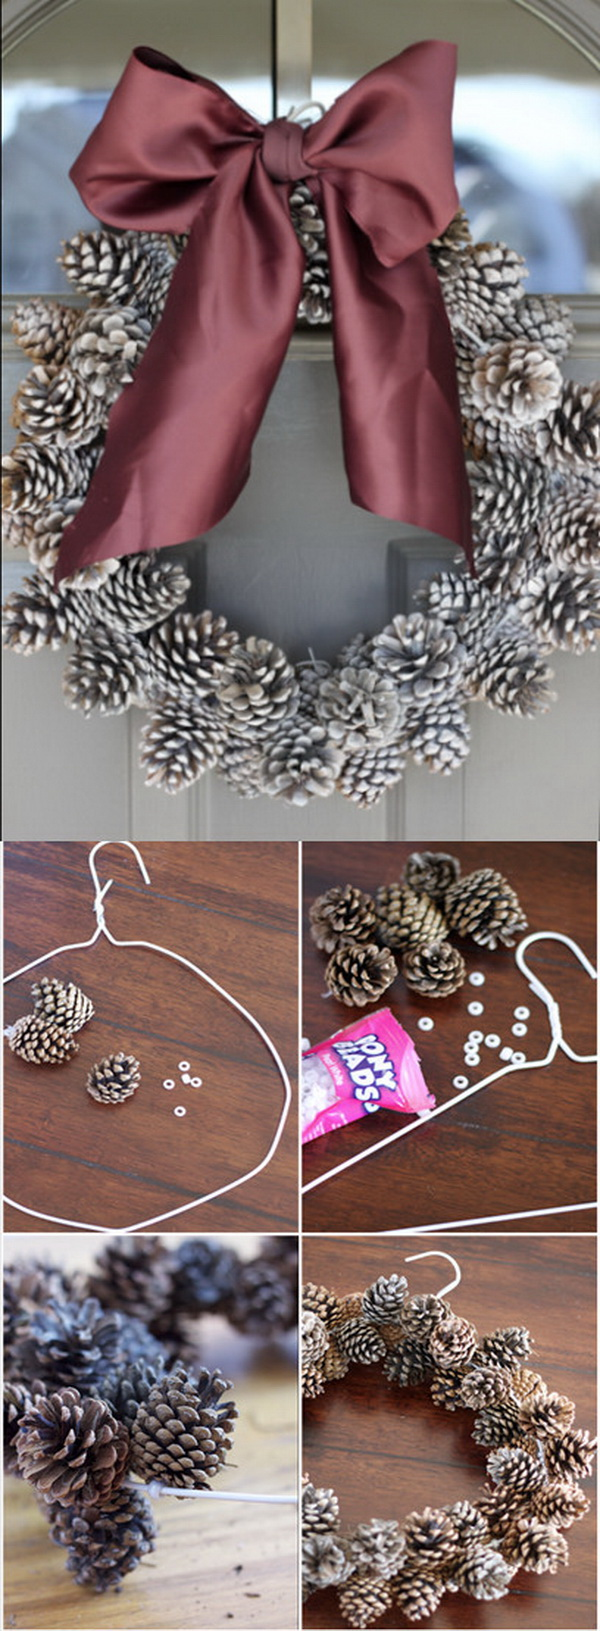 DIY Pine Cone Wreath. The most amazing Christmas pinecone wreath to decorate your home for the holidays.